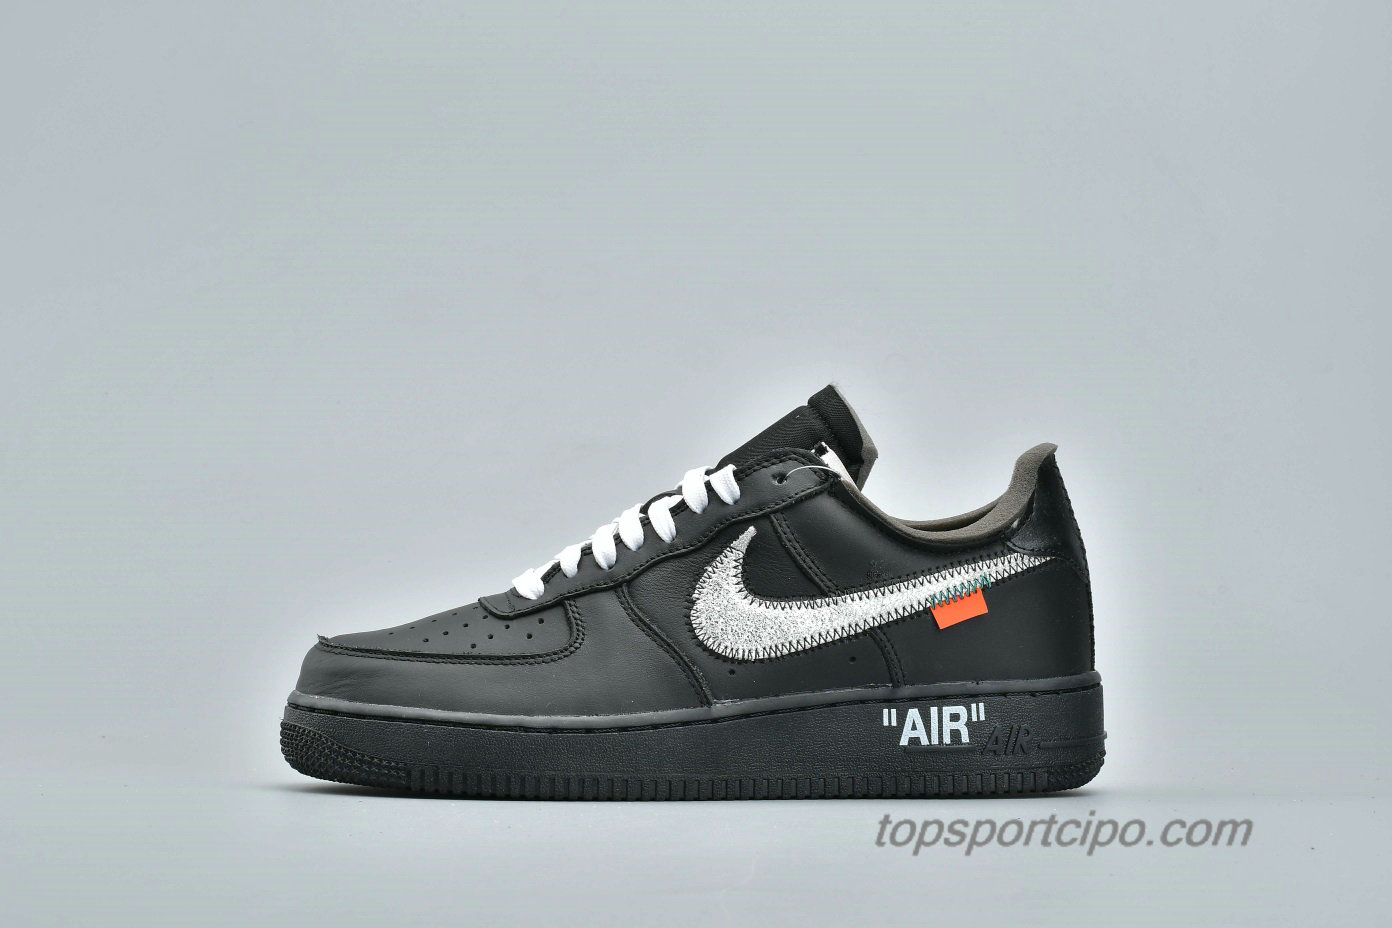 Off-White Nike Air Force 1 Low 07 VIRGIL x MOMA Unisex Cipő AV5210-001 (Fekete)